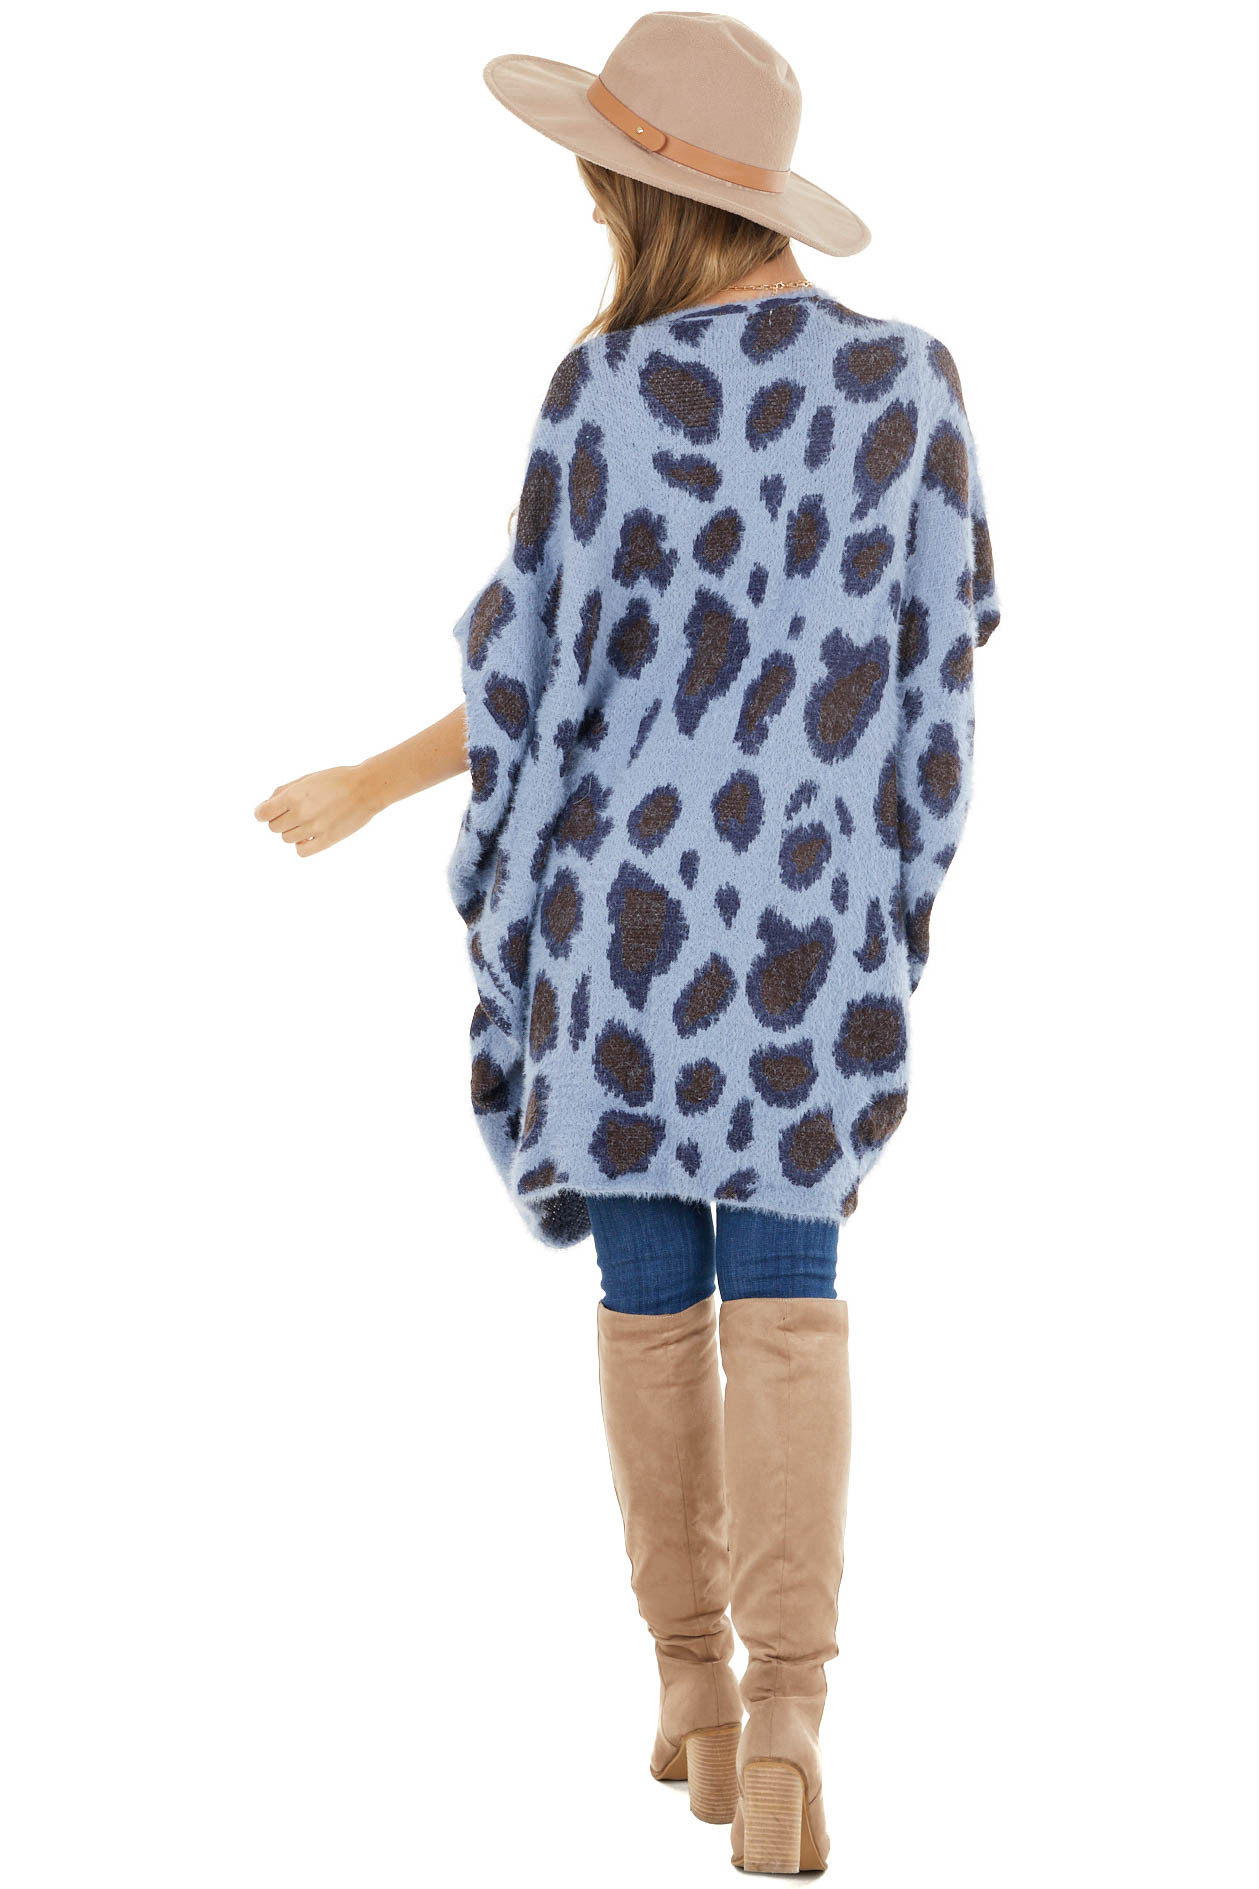 Dusty Blue and Navy Leopard Print 3/4 Sleeve Soft Cardigan